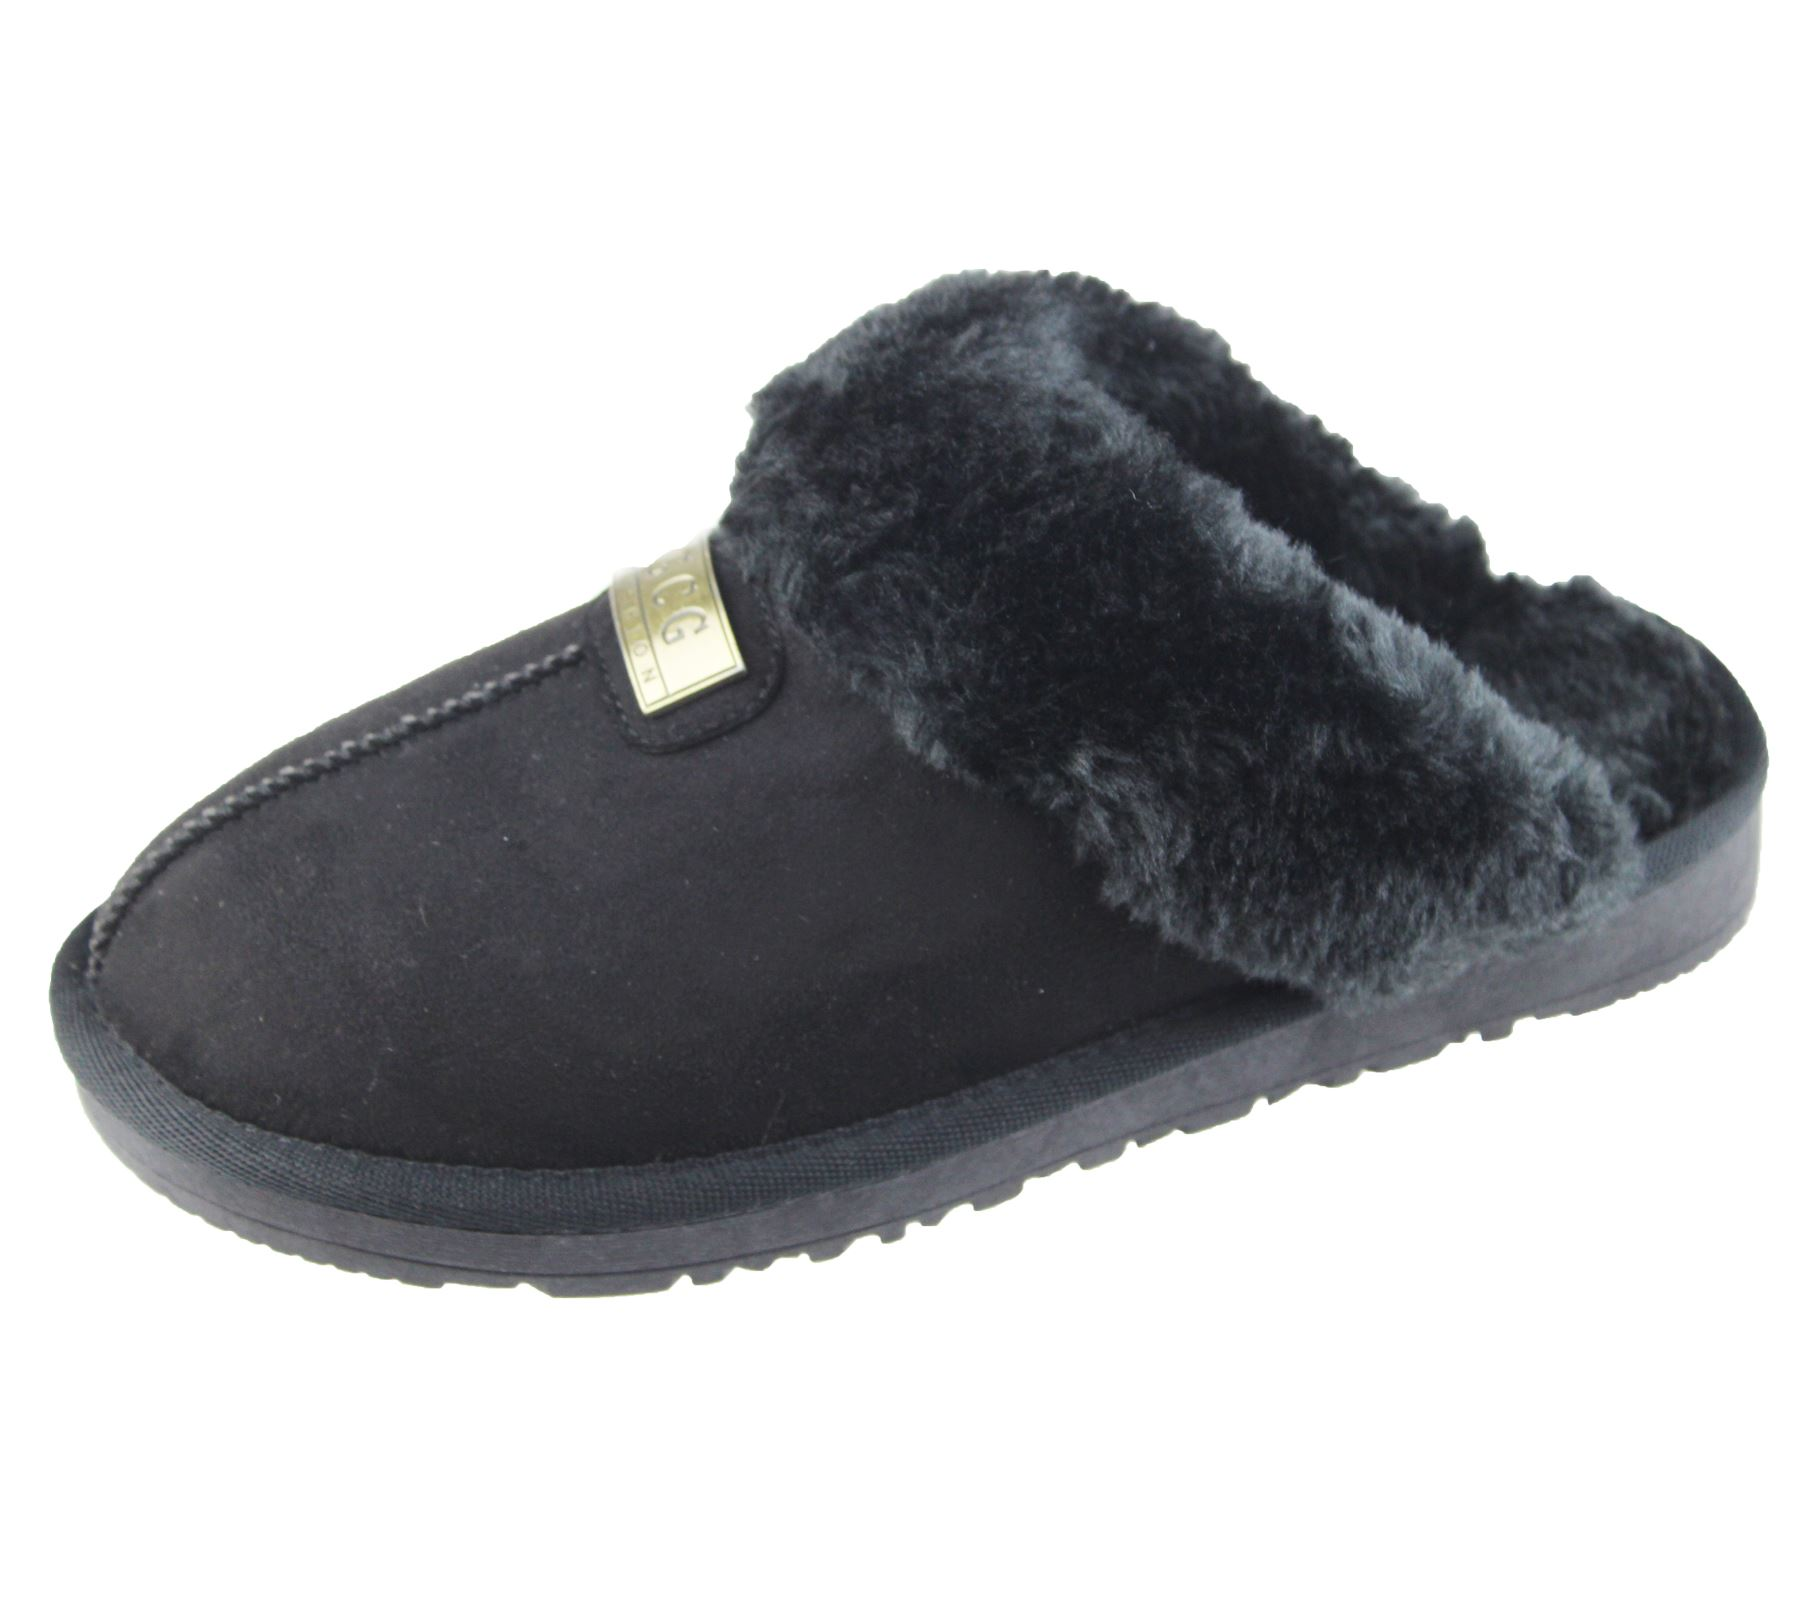 Womens-Fur-Lined-Slippers-Ladies-Mules-Non-Slip-Rubber-Sole-Shoes miniatura 6